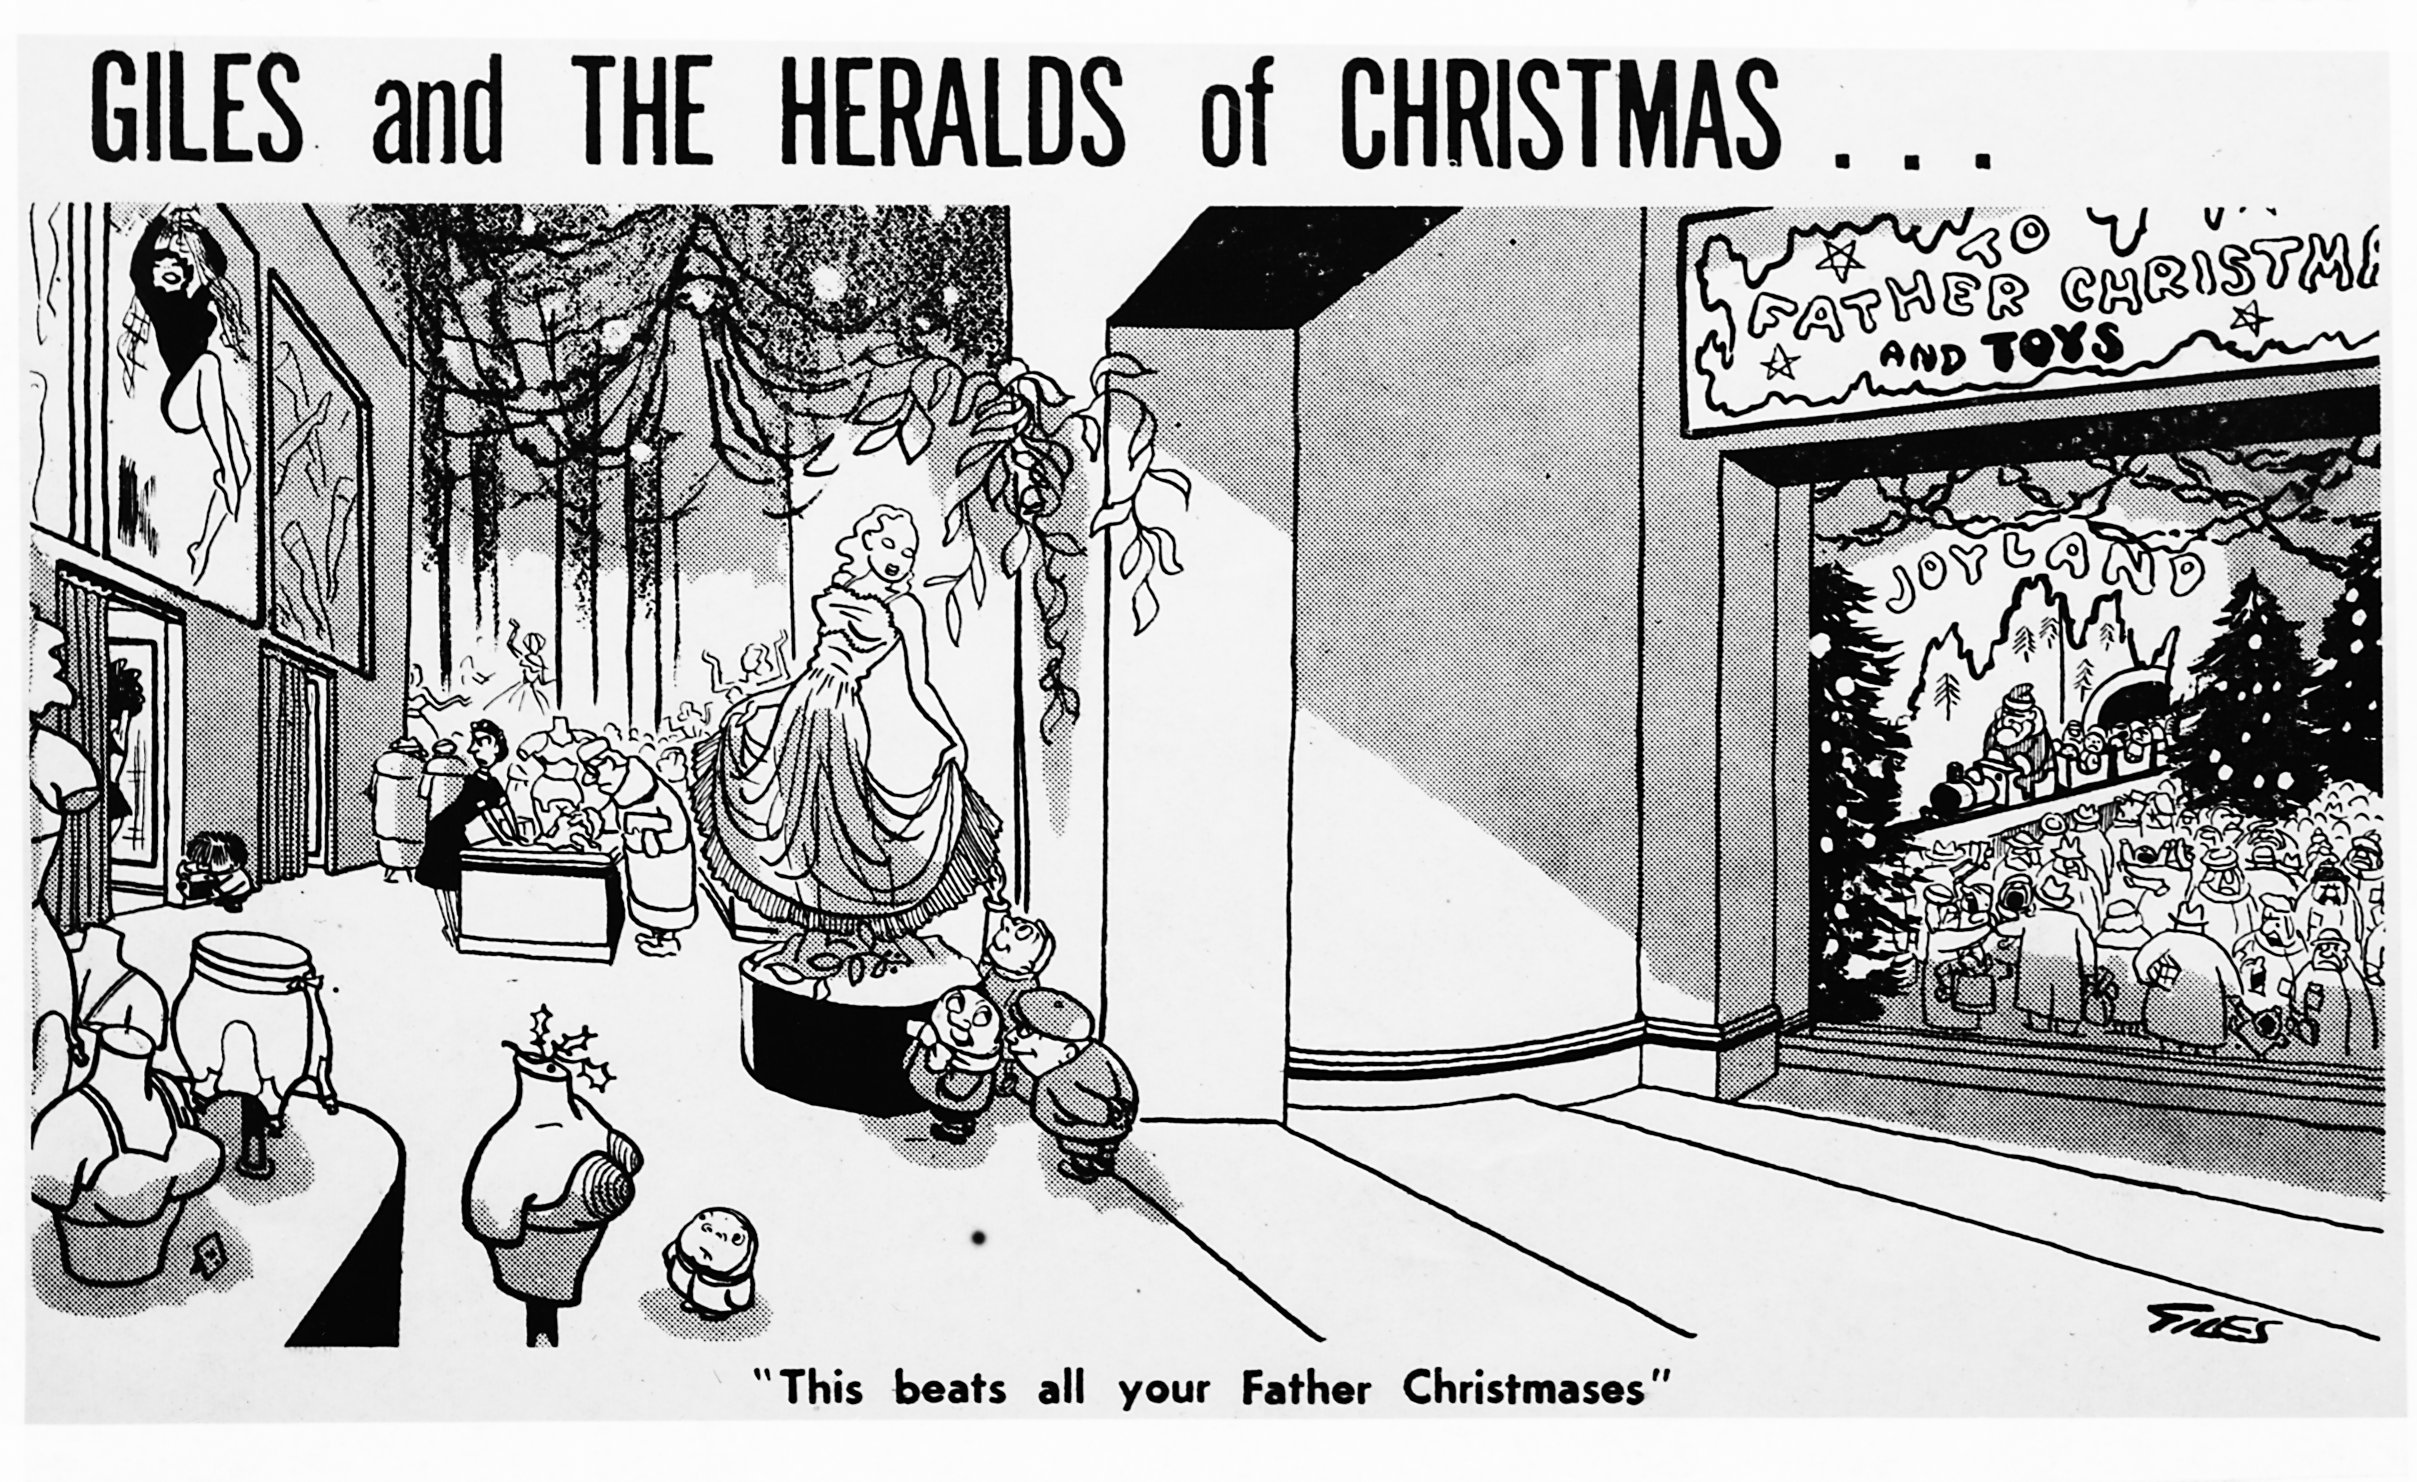 """This beats all your Father Christmases."" - Carl Giles, Daily Express, 11 December 1956 (Image ref: GAN0166)"